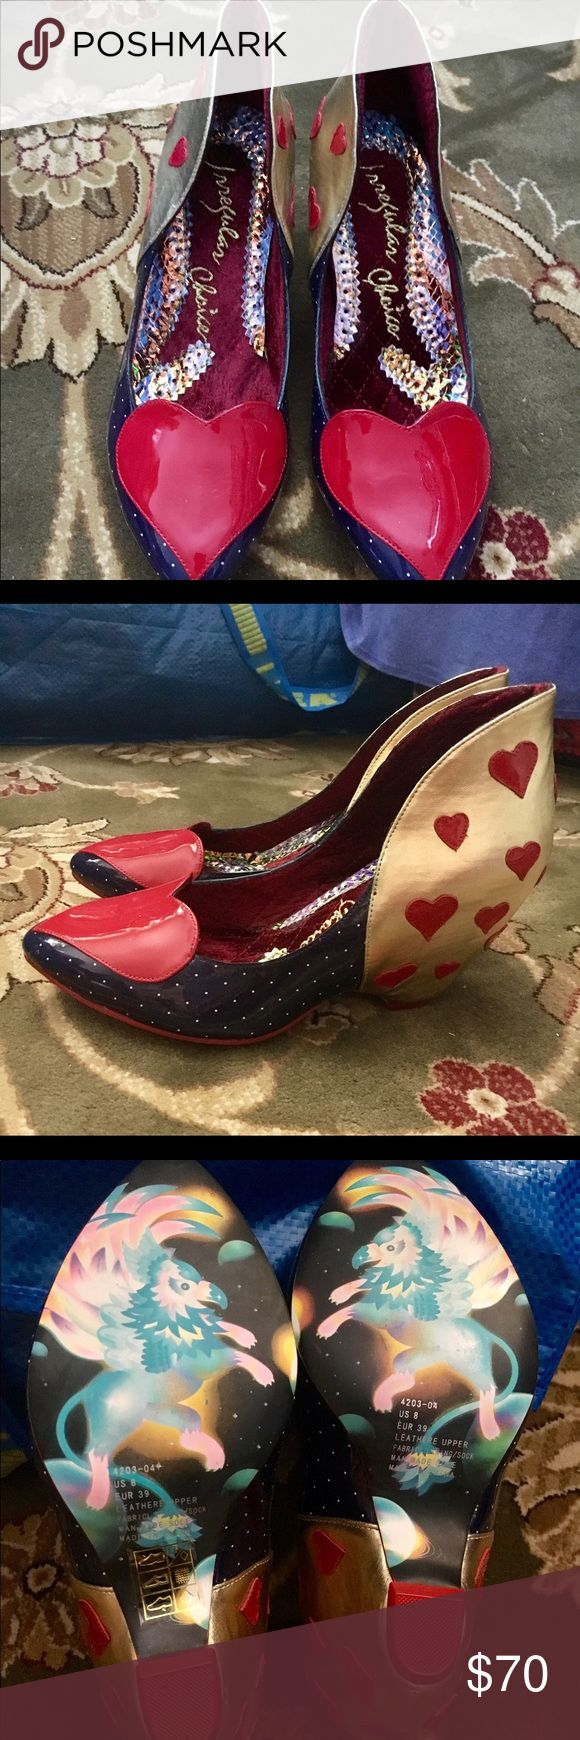 Irregular Choice Heart shoes 8 Brand New! Unique and fun! Does not ship in box. 8 SALE price $70 ends @12 am 6/29.  Price back up to $90 at that time!! Shoes Wedges